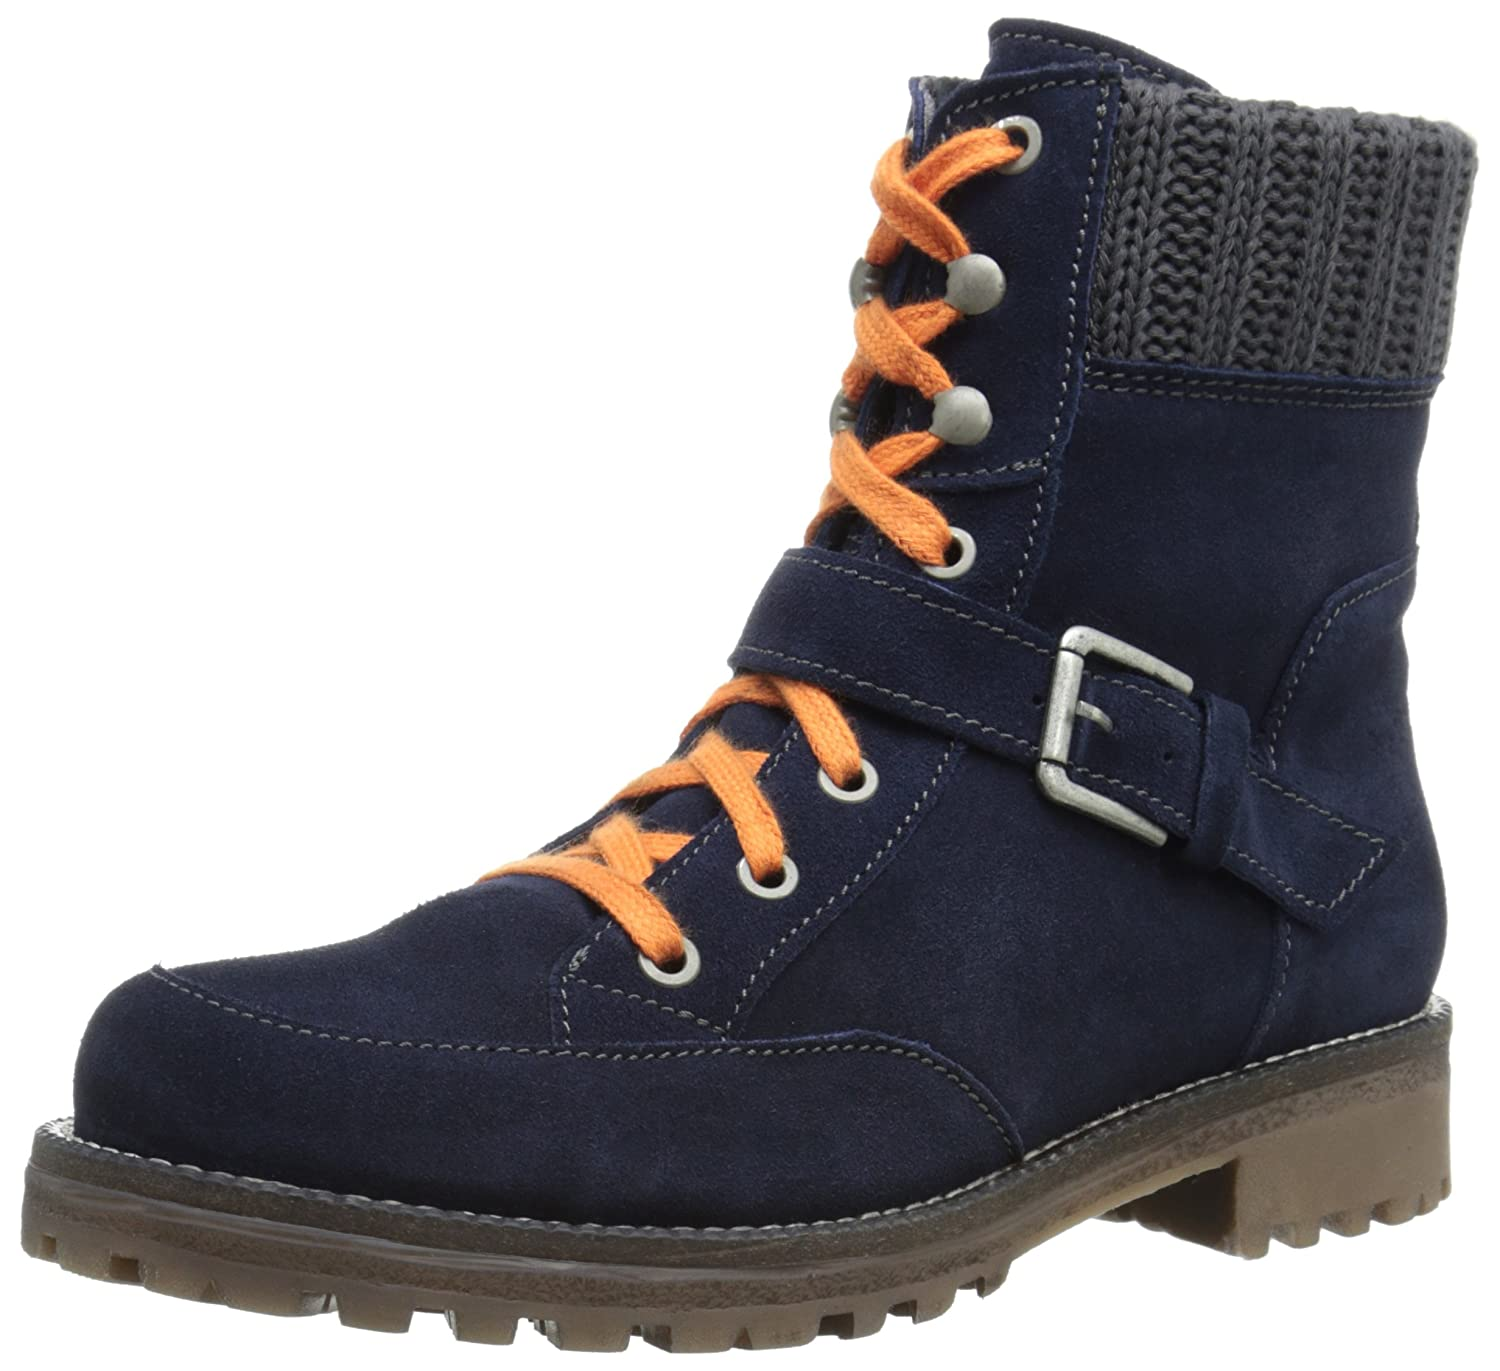 Bos. & Co. Women's Colony Boot B00VTCR8OY 37 EU/6.5-7 M US|Navy Grey